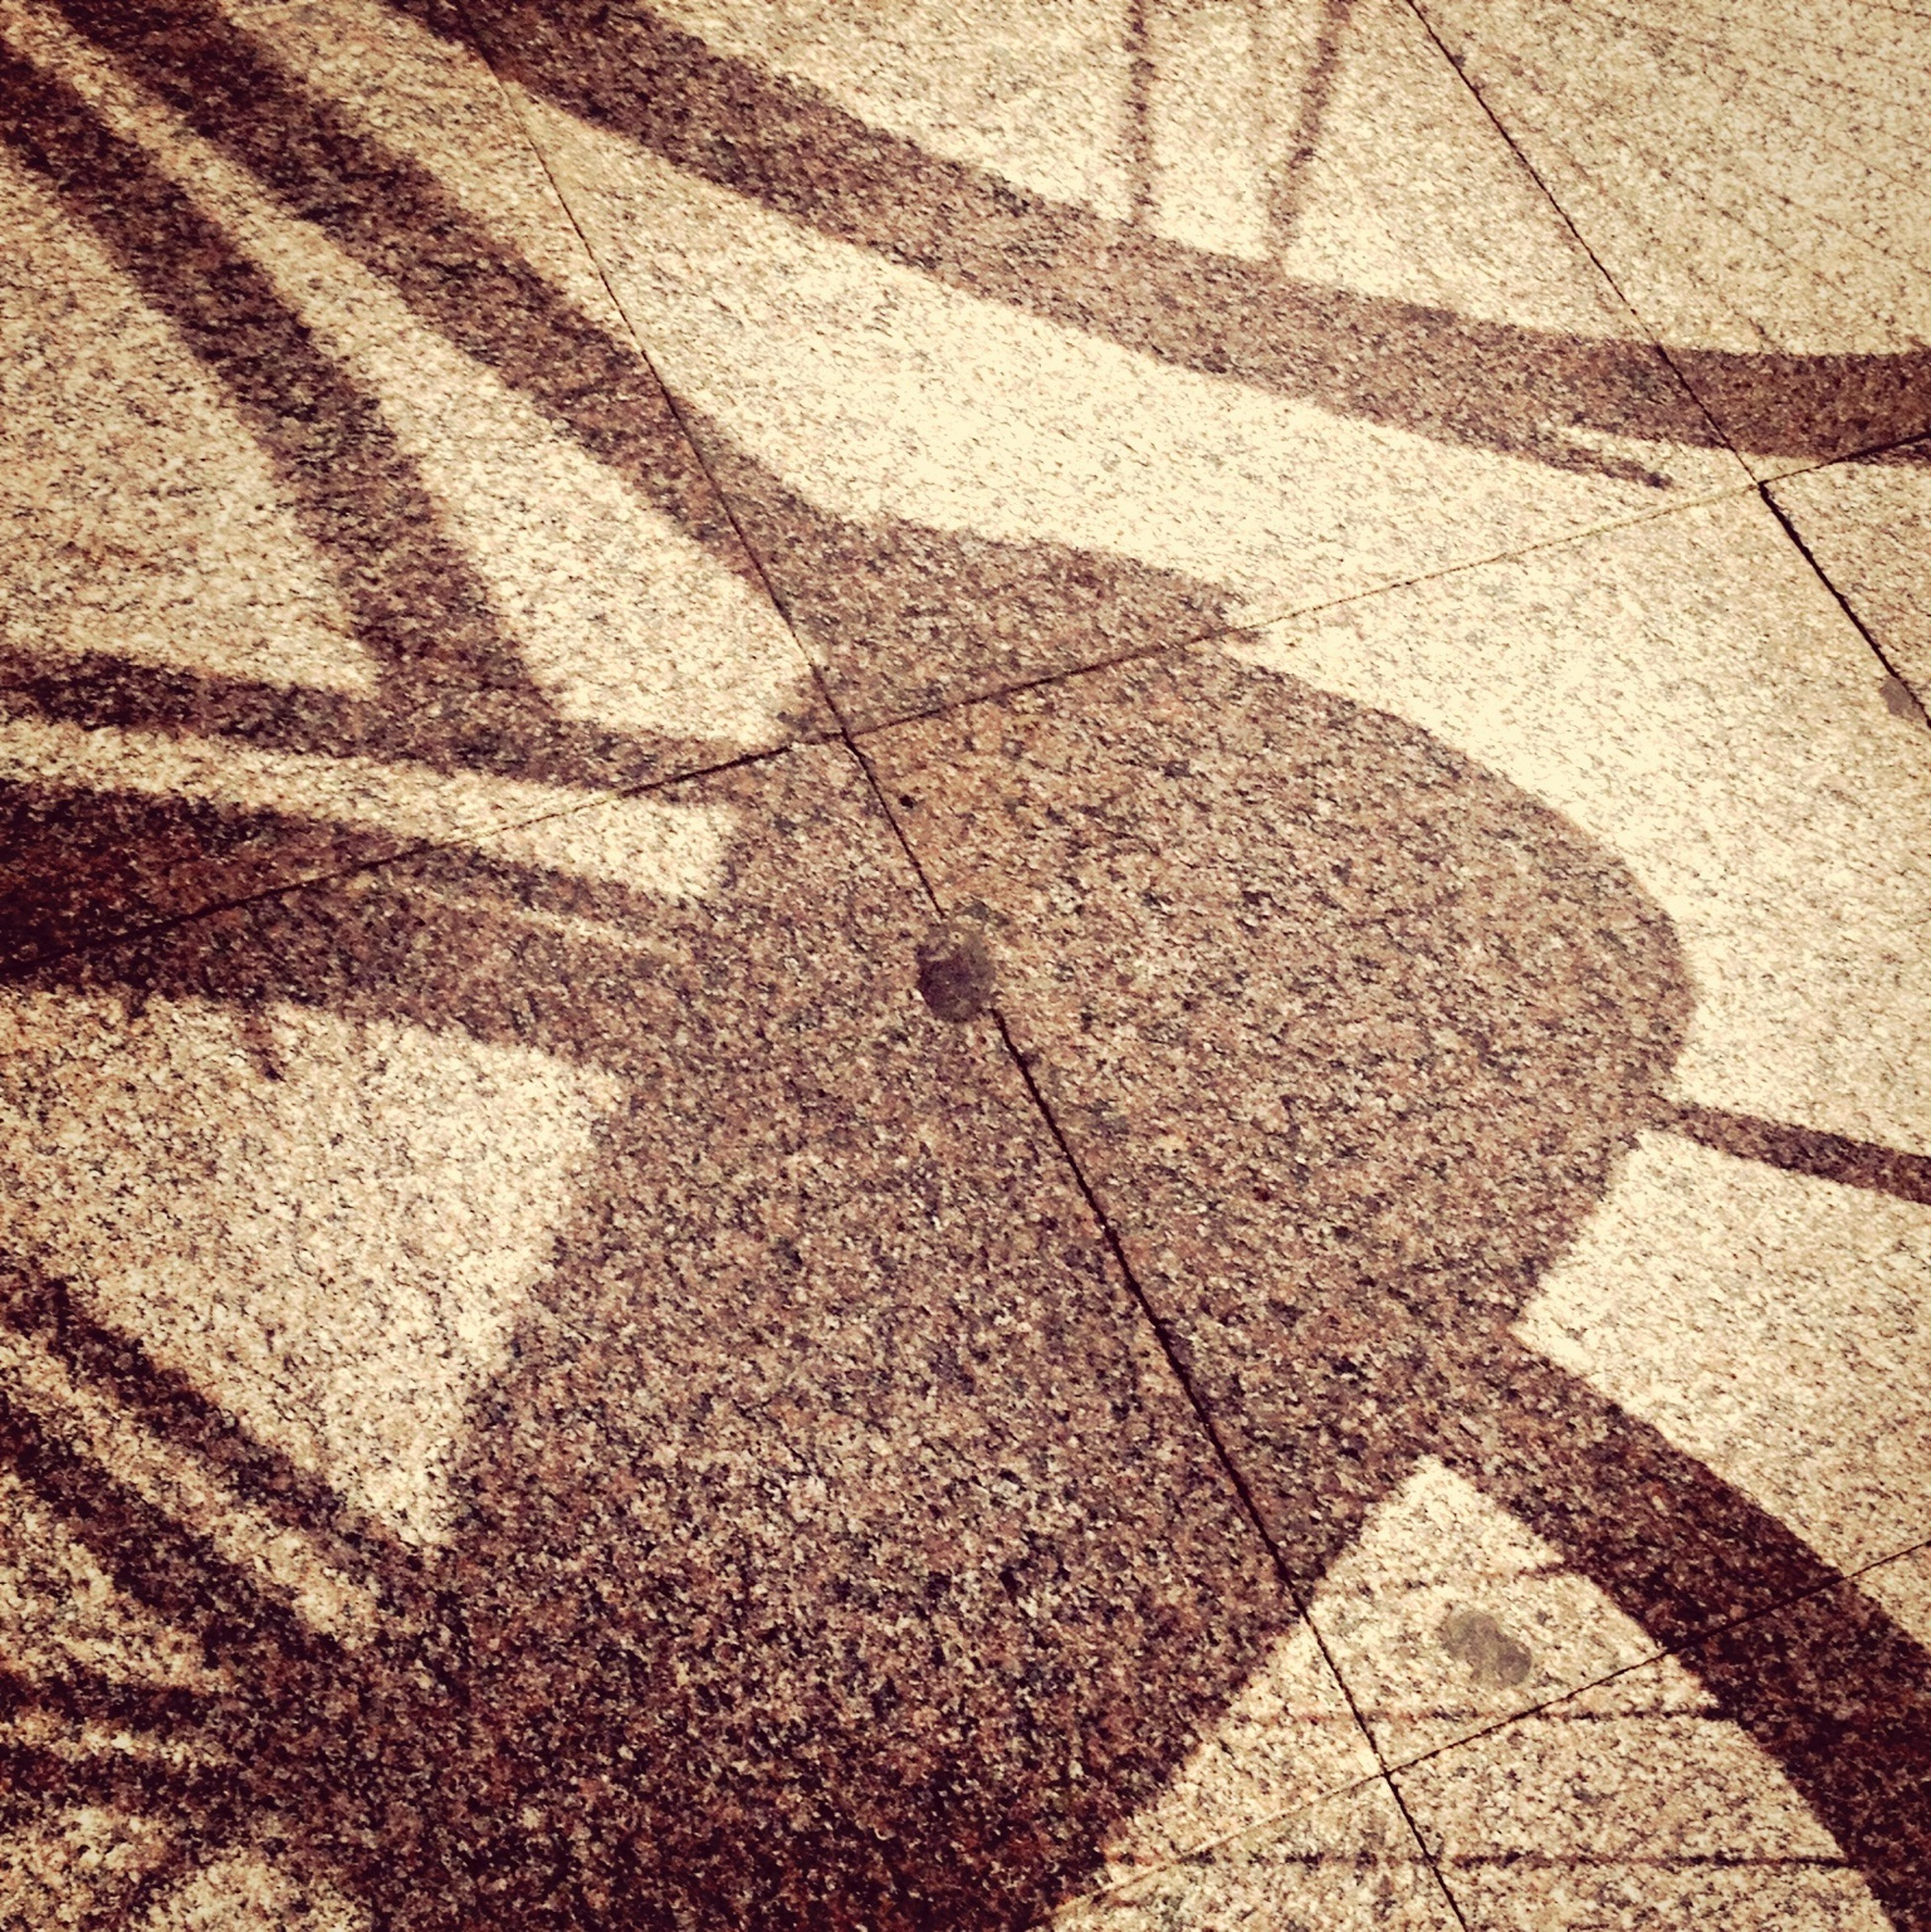 shadow, high angle view, pattern, full frame, sunlight, textured, backgrounds, cobblestone, street, focus on shadow, paving stone, footpath, day, outdoors, no people, sidewalk, road, sunny, asphalt, elevated view